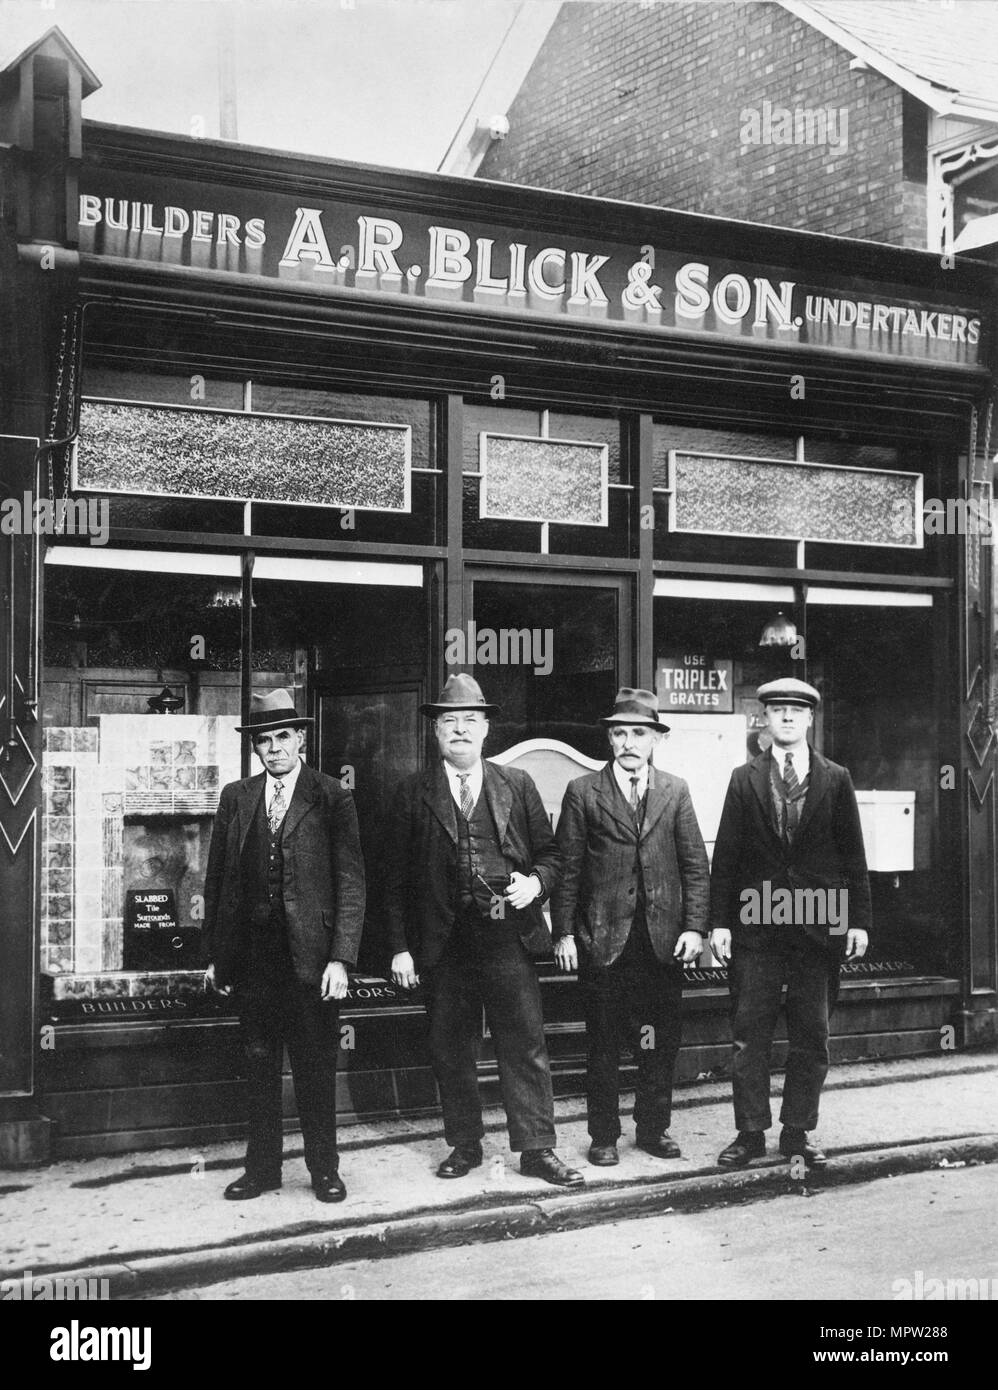 Employees of AR Blick and Son, builders and undertakers, Stonehouse, Gloucestershire, 1935. Artist: Unknown. - Stock Image